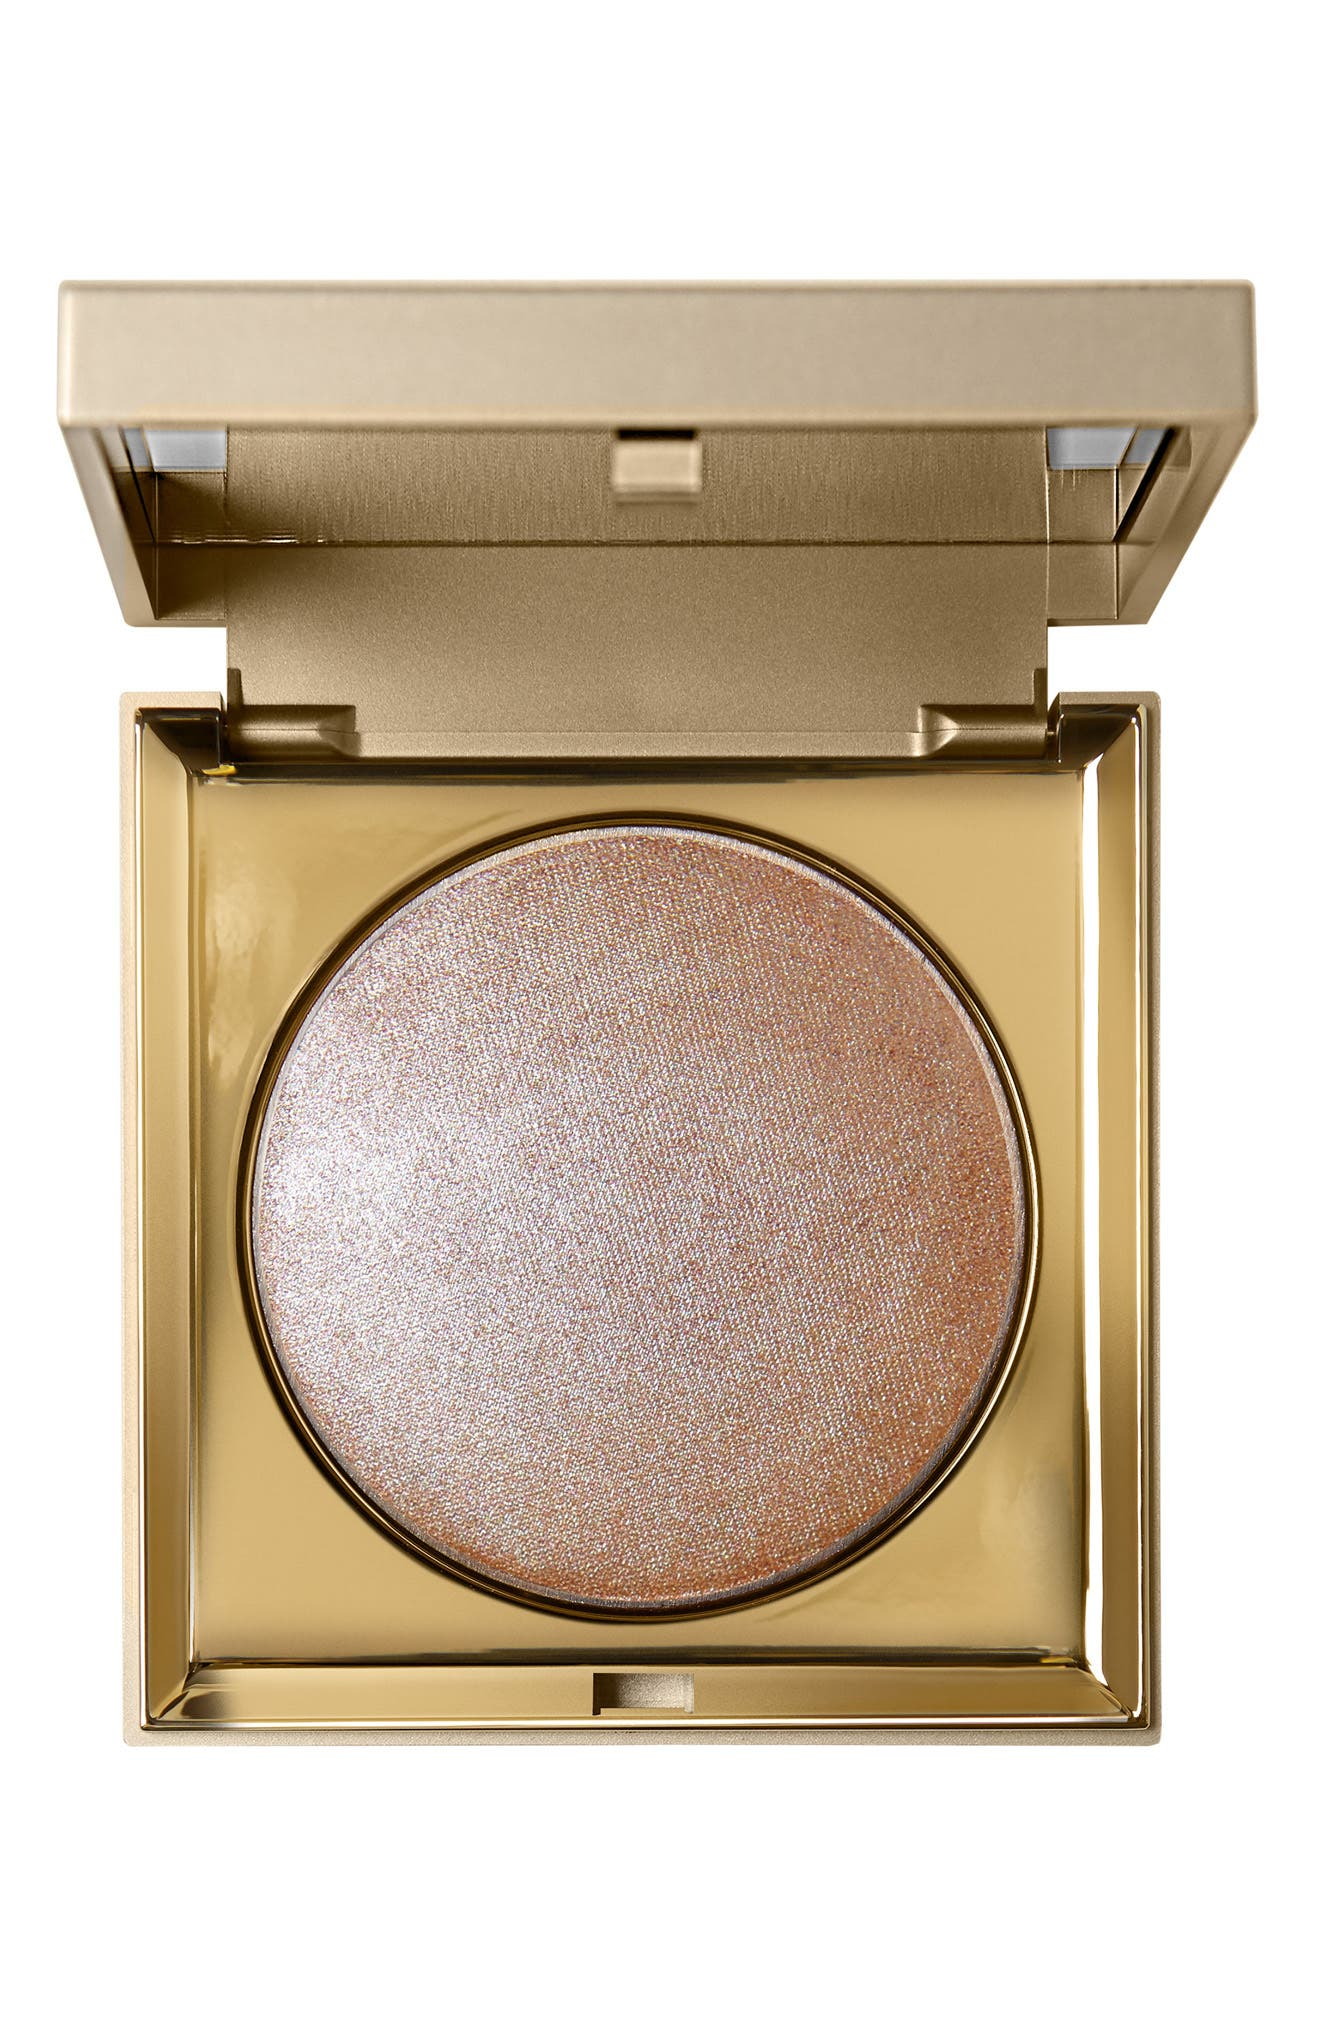 Image of Stila Heavens Hue Highlighter, 0.35 fl oz.